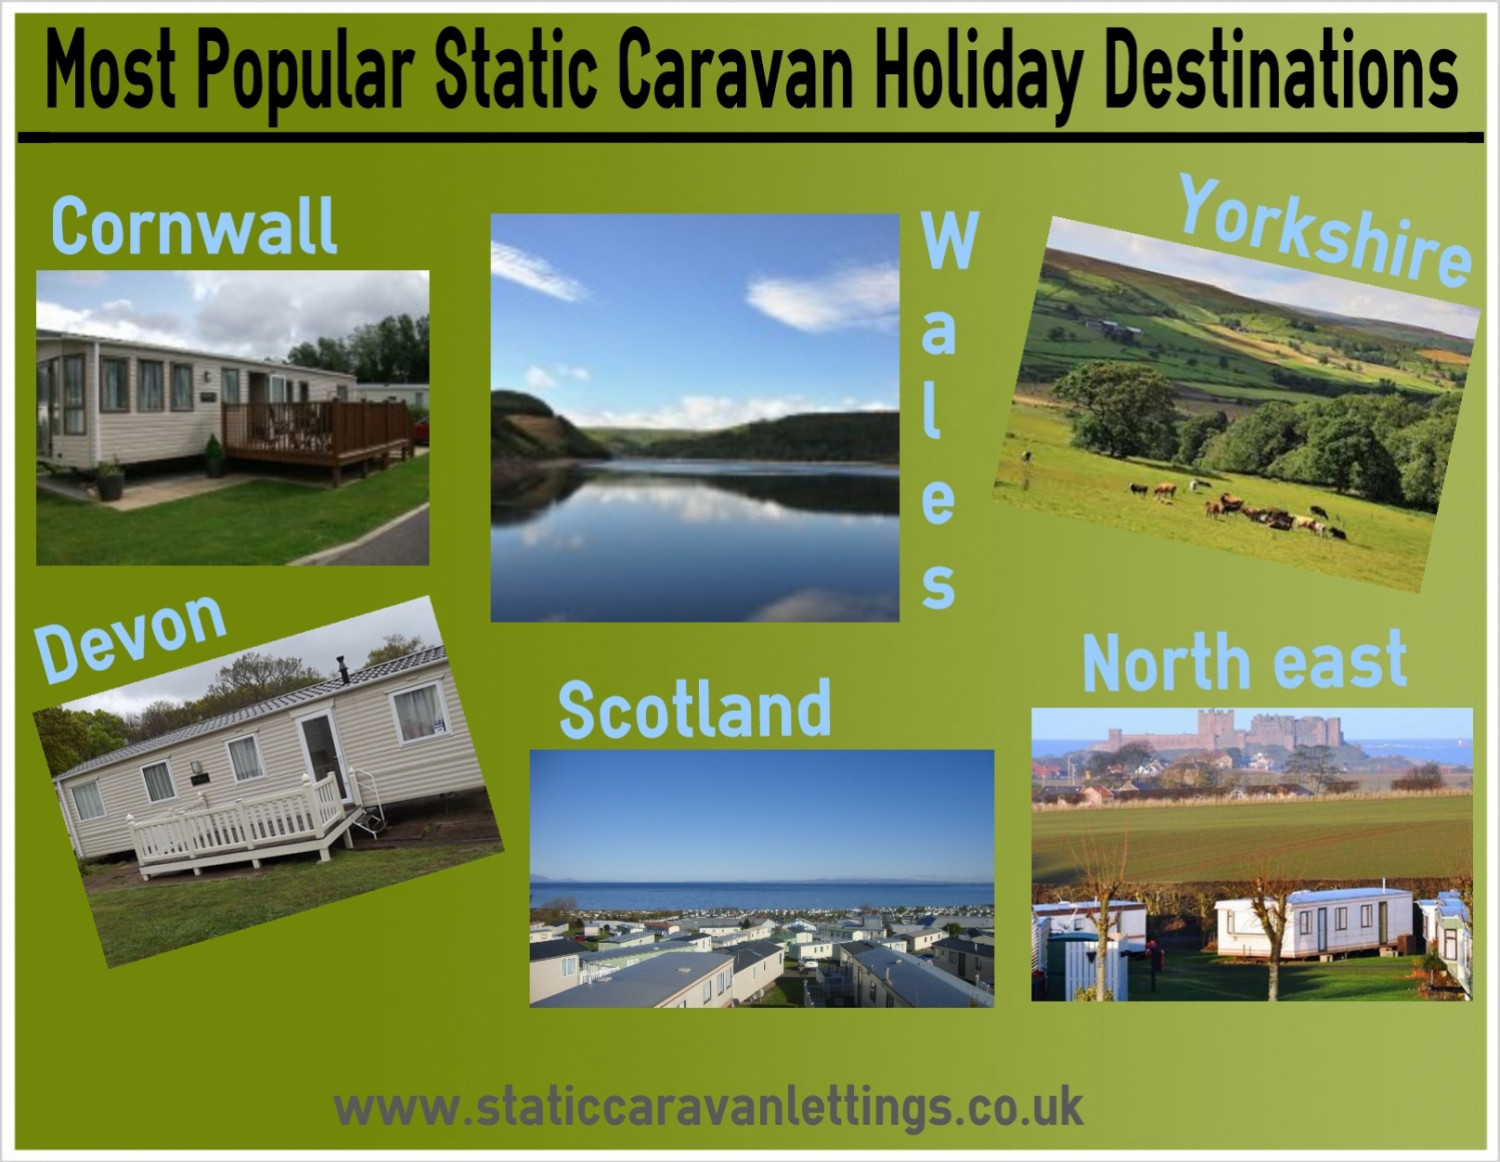 Popular Static Caravan Holiday Destinations Infographic